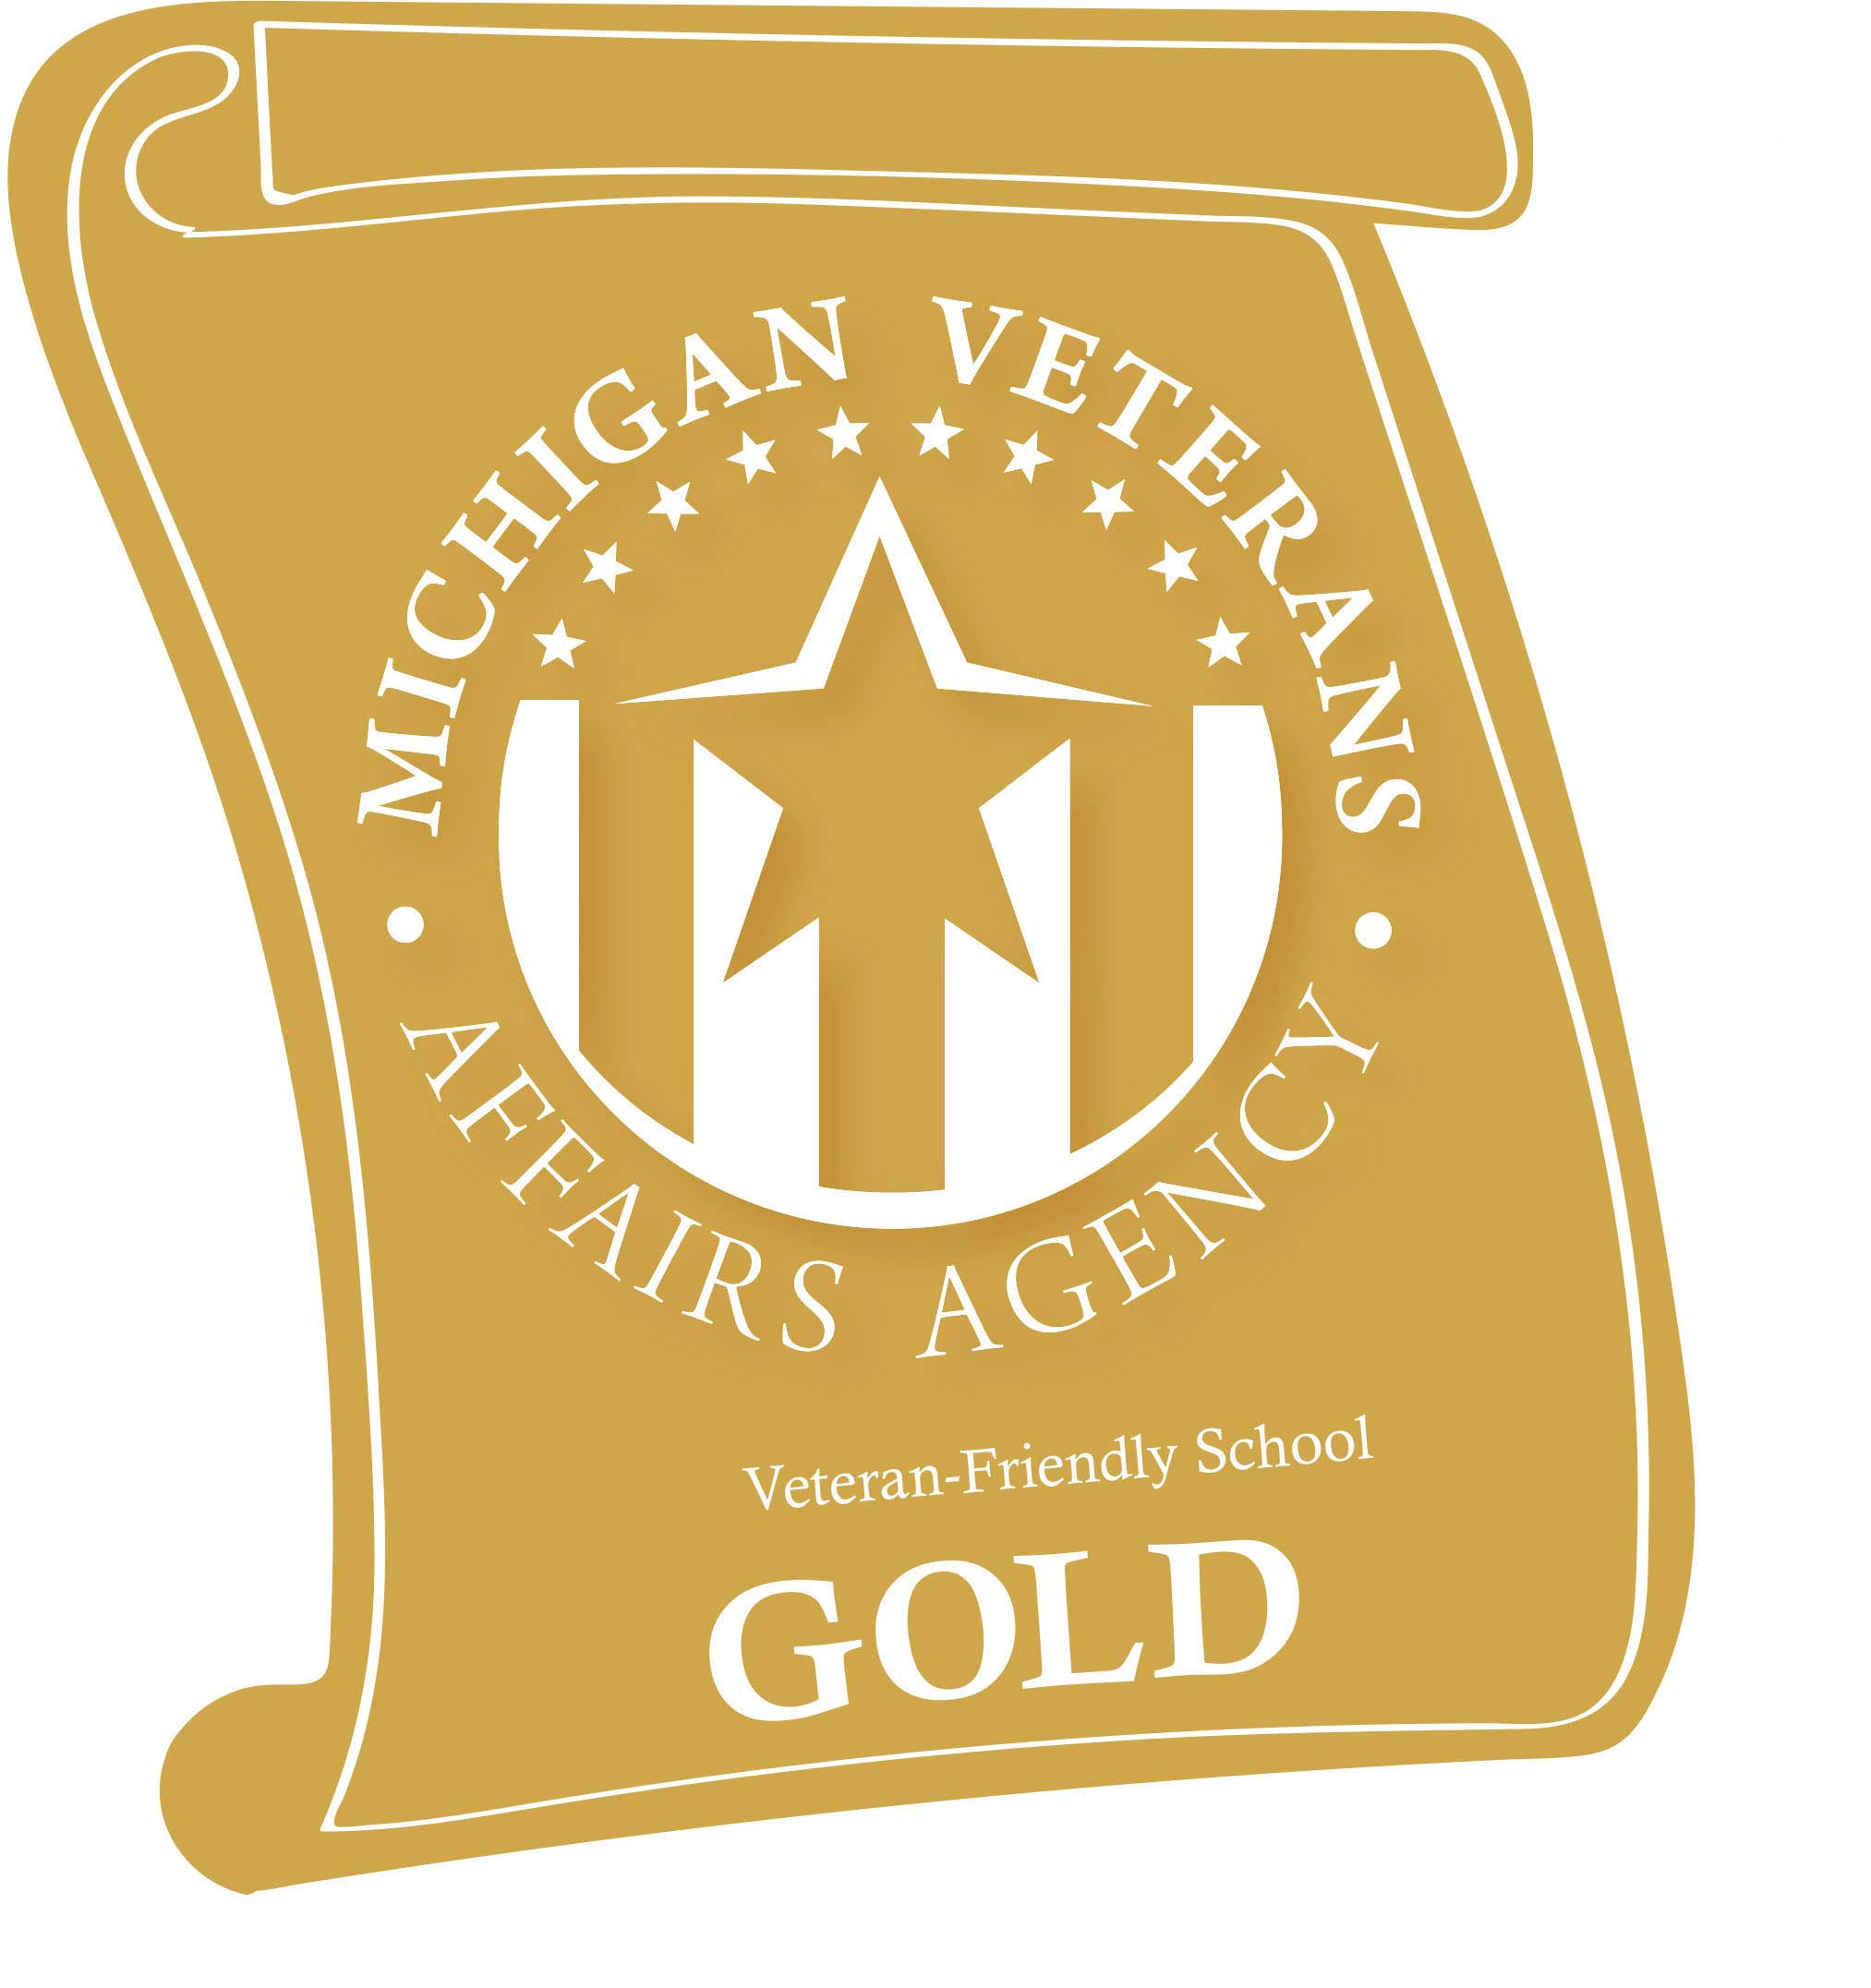 Michigan Veterans Affairs Agency Veteran Friendly Schools gold